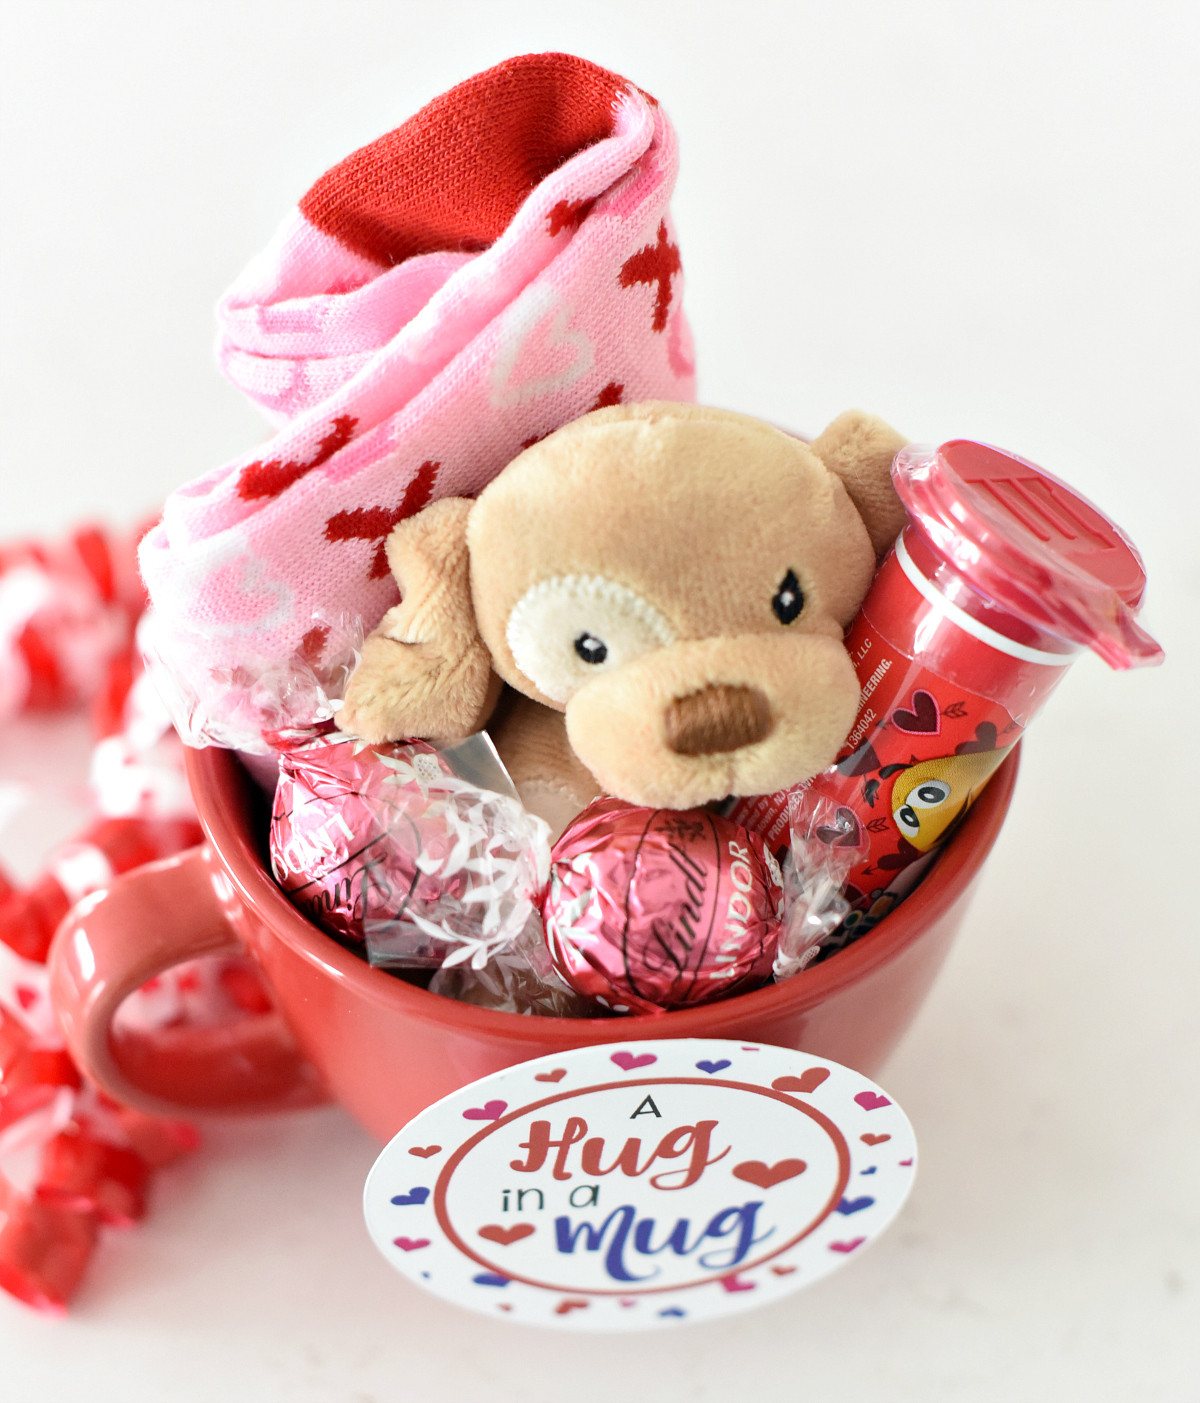 Valentines Gift Ideas For Toddlers  Fun Valentines Gift Idea for Kids – Fun Squared